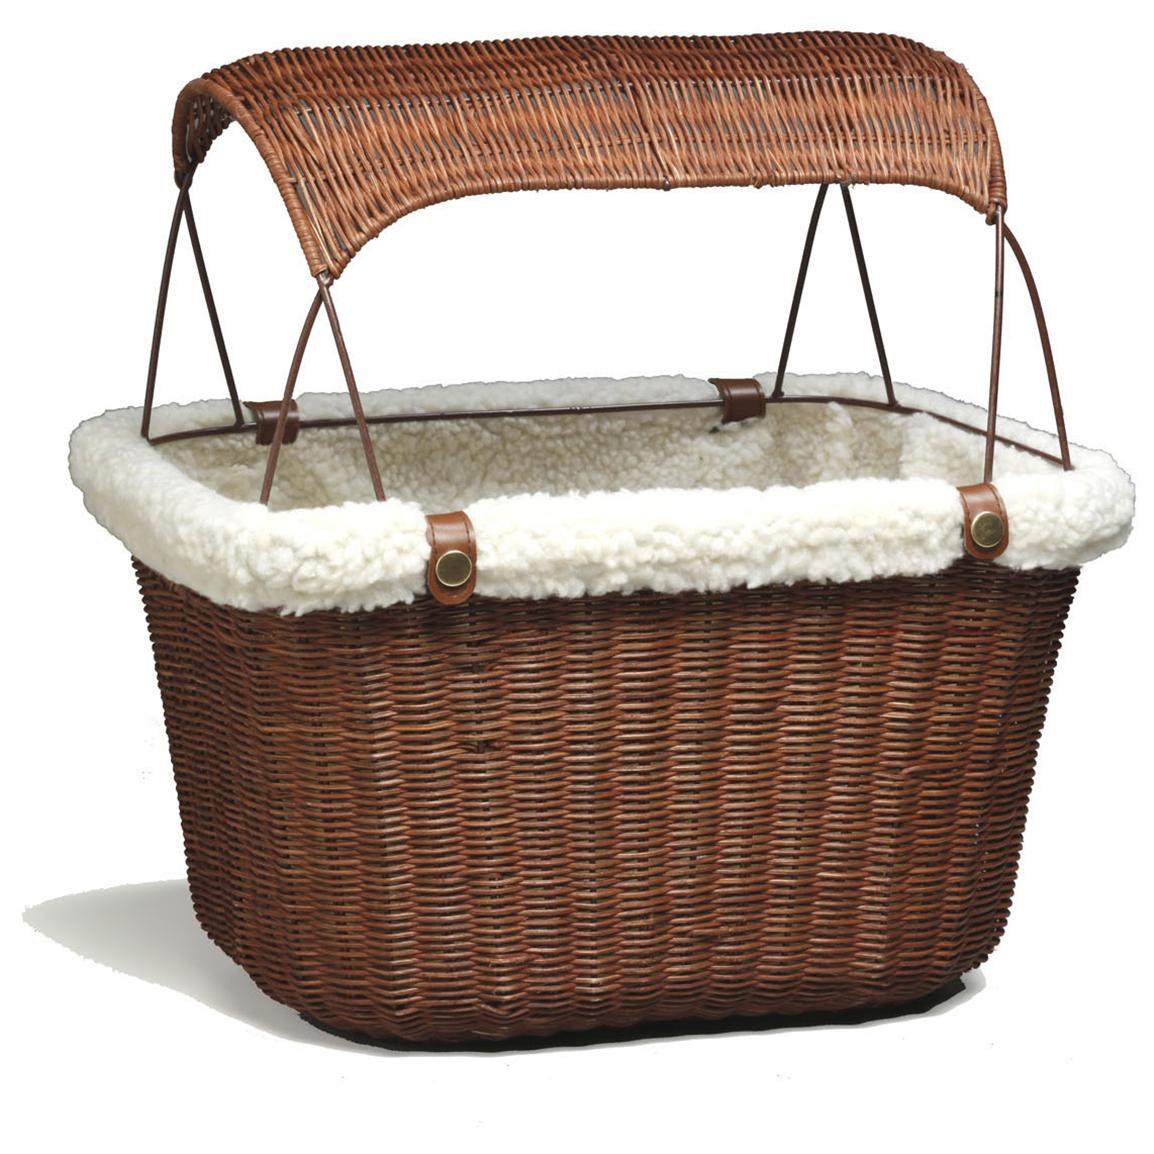 Tagalong™ Wicker Bicycle Basket